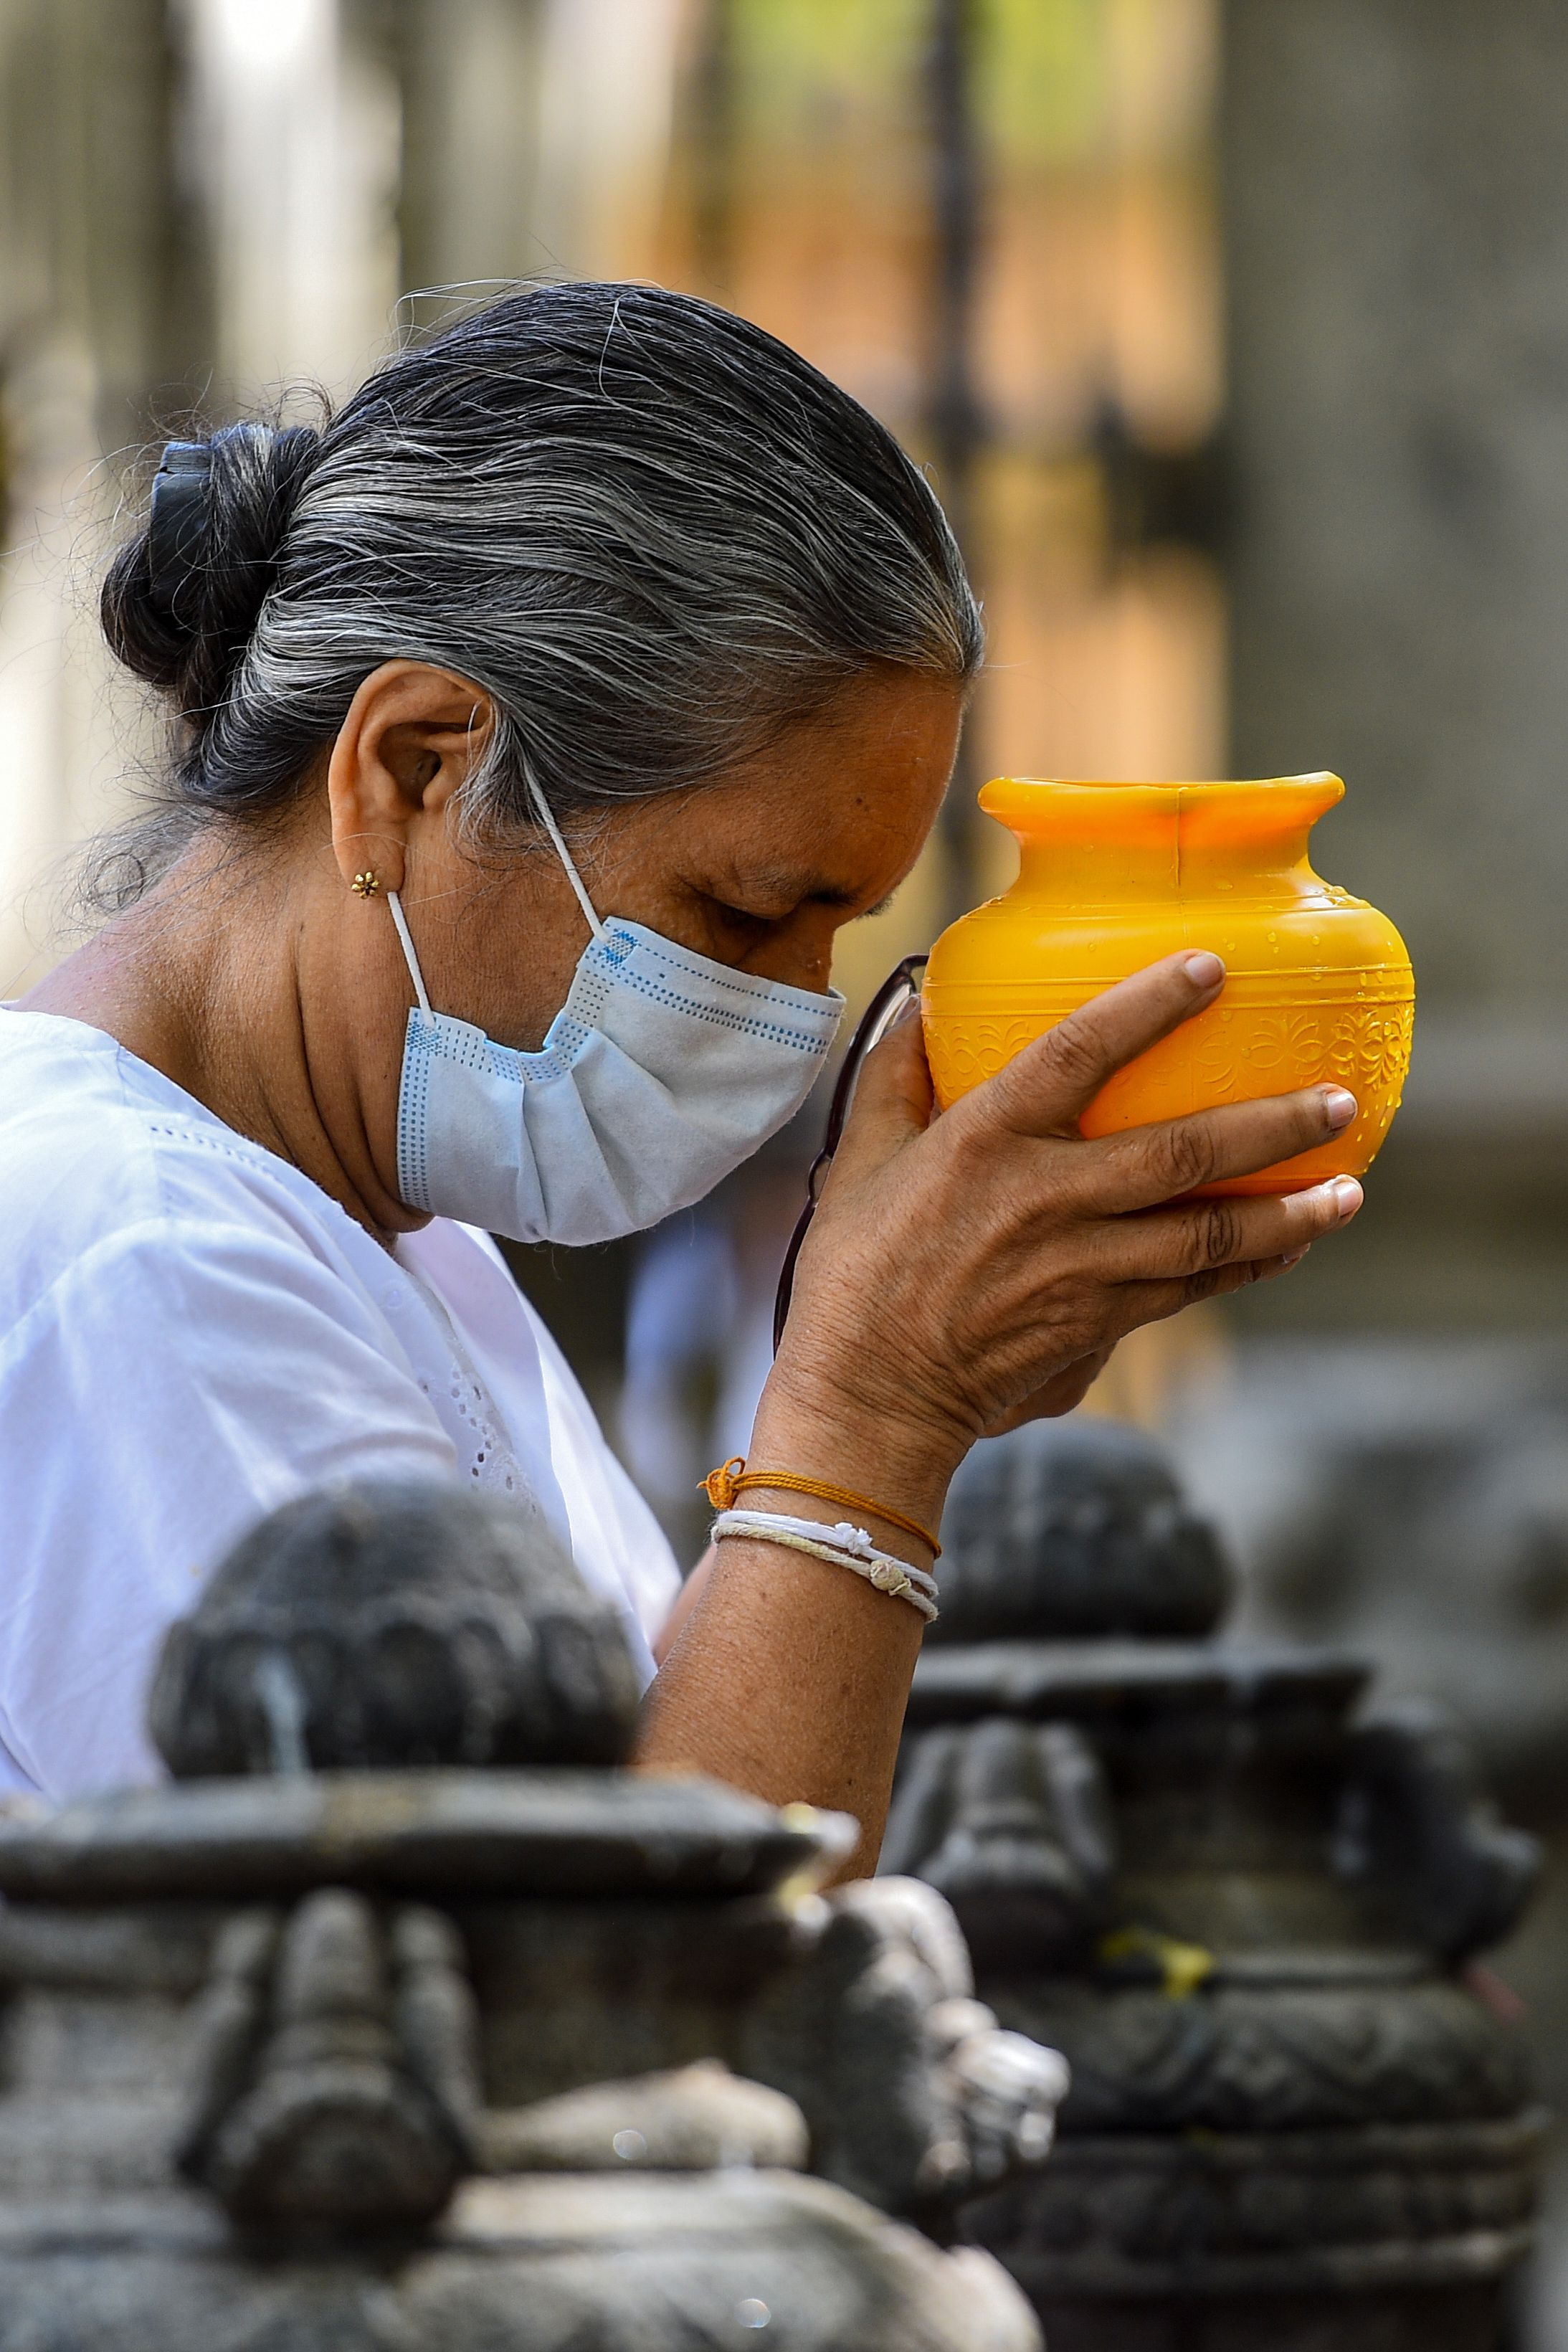 A Buddhist devotee holds a pot of water while offering prayers at the Kelaniya temple during the Poson Poya (full moon) religious festival marking the arrival of Buddhism in the island, on the outskirts of Colombo on June 5, 2020. - Sri Lanka on June 5 marked a key Buddhist festival with a nation-wide 24-hour curfew as devotees were urged to remain indoors to help prevent the spread of the coronavirus. (Photo by ISHARA S. KODIKARA / AFP) (Photo by ISHARA S. KODIKARA/AFP via Getty Images)